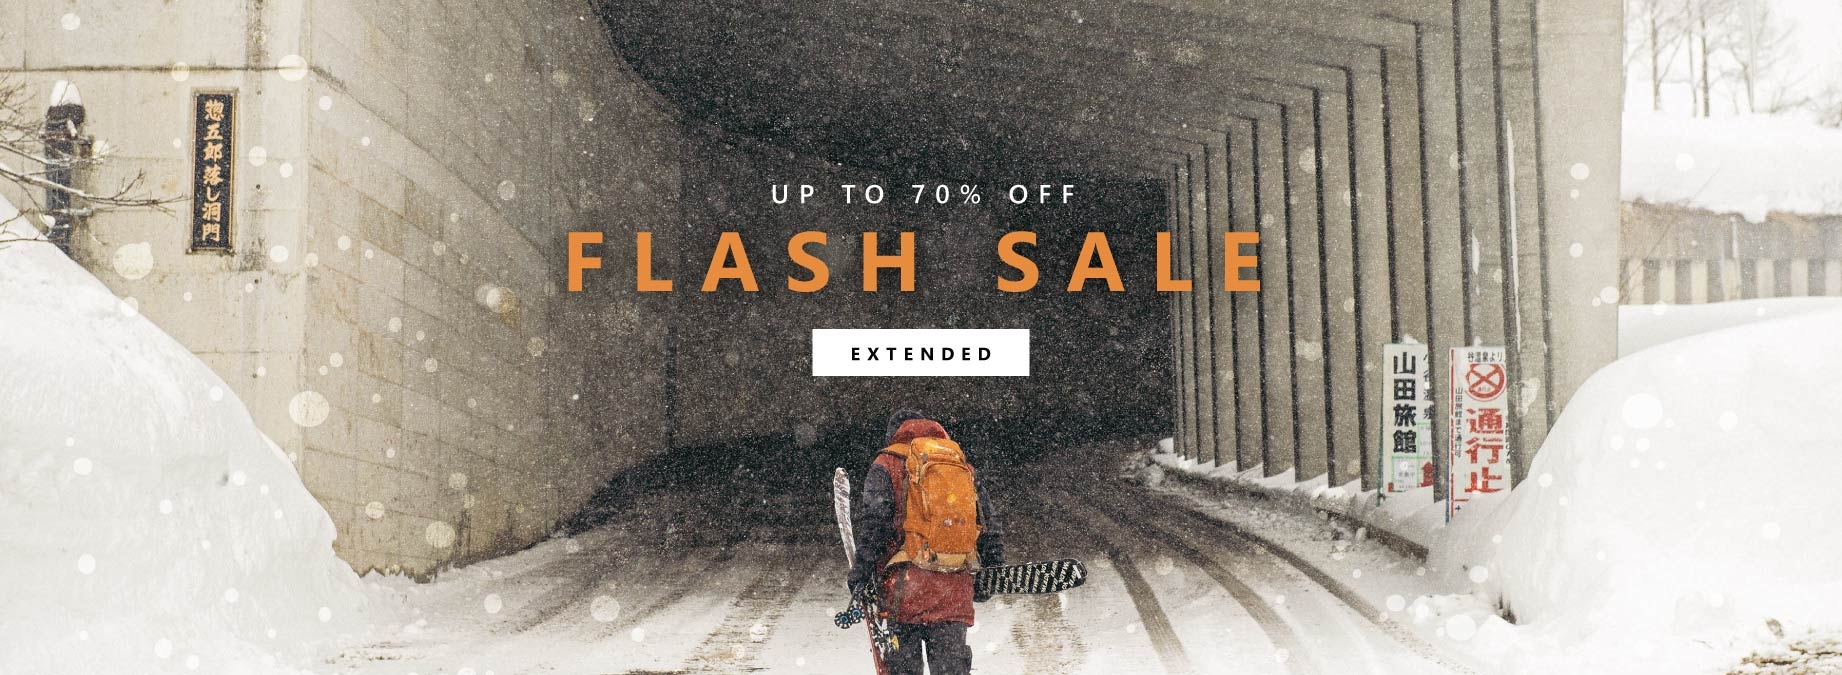 Flash Sale EXTENDED